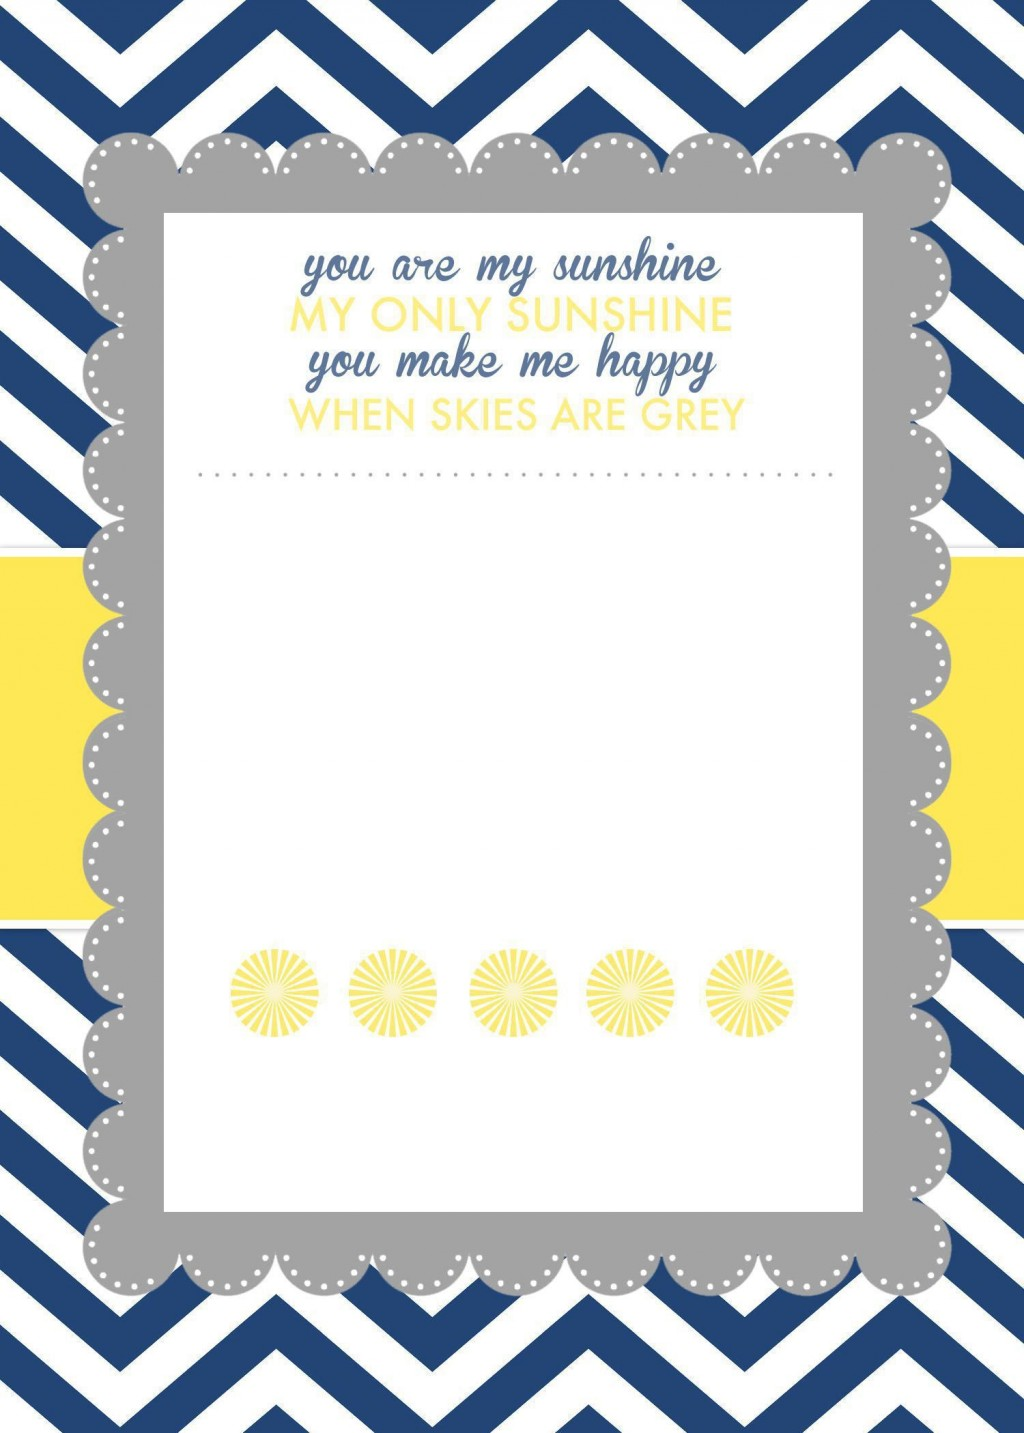 003 Shocking Baby Shower Template Word Concept  Printable Search Free InvitationLarge